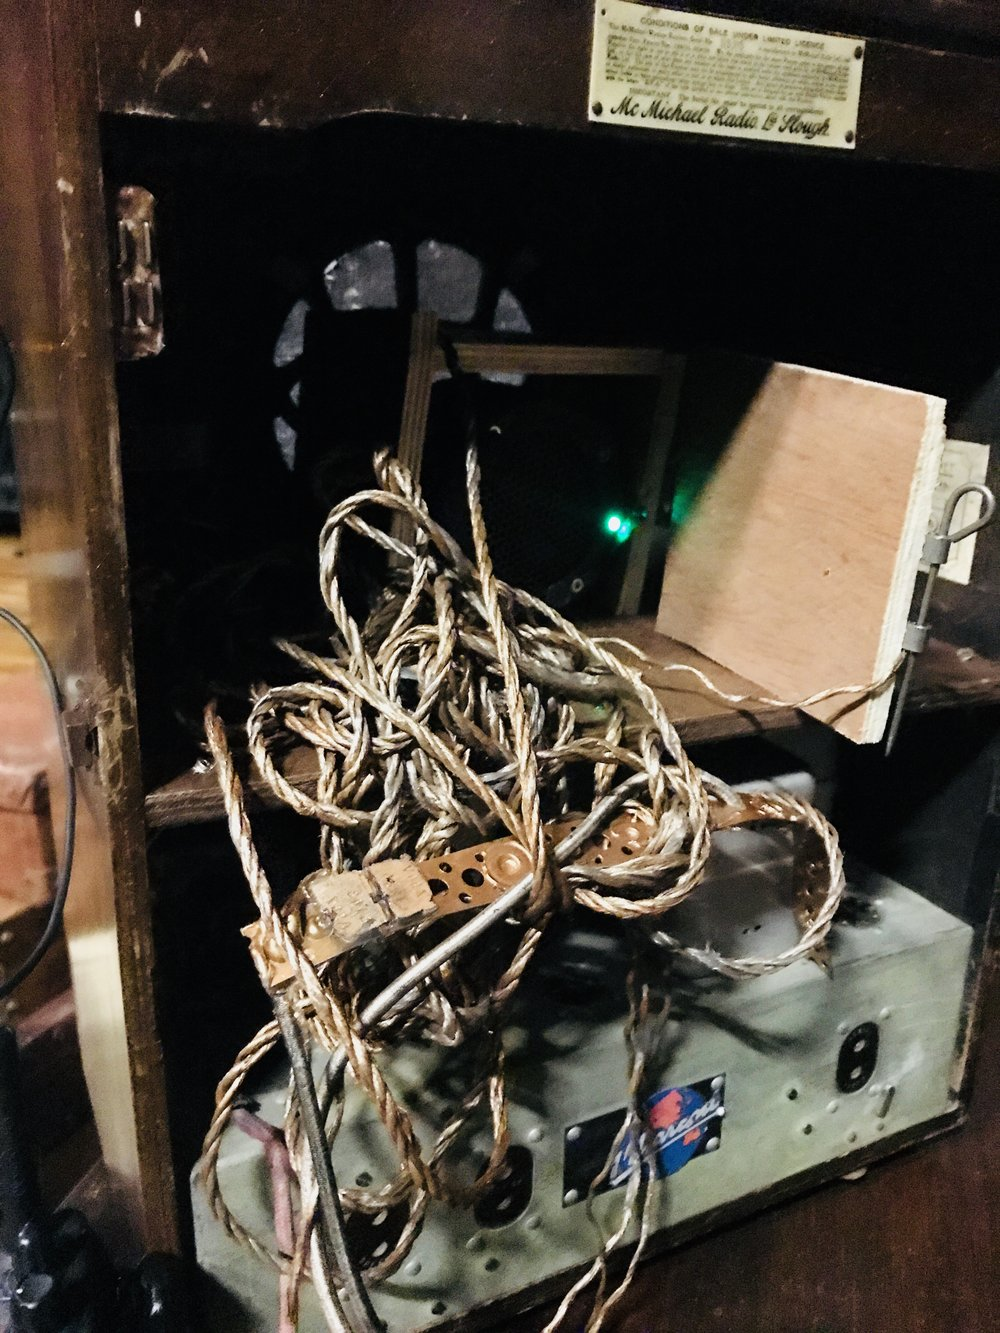 The reassuring green glow of our Minirig 2 peeks out from the bowels of a 1940s Radio cabinet